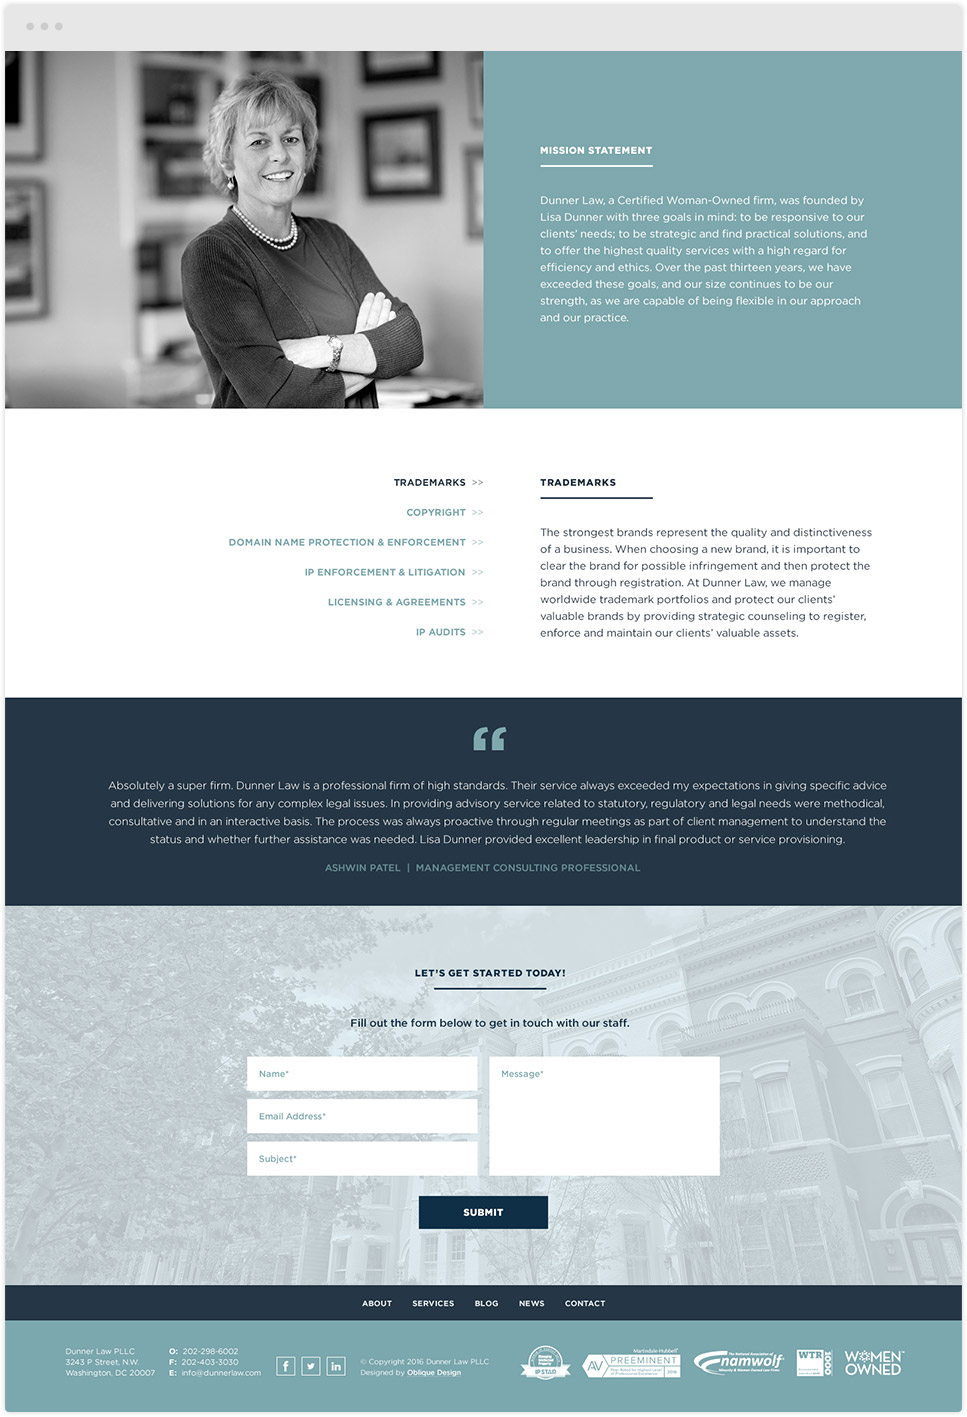 law firm website design for dunner law